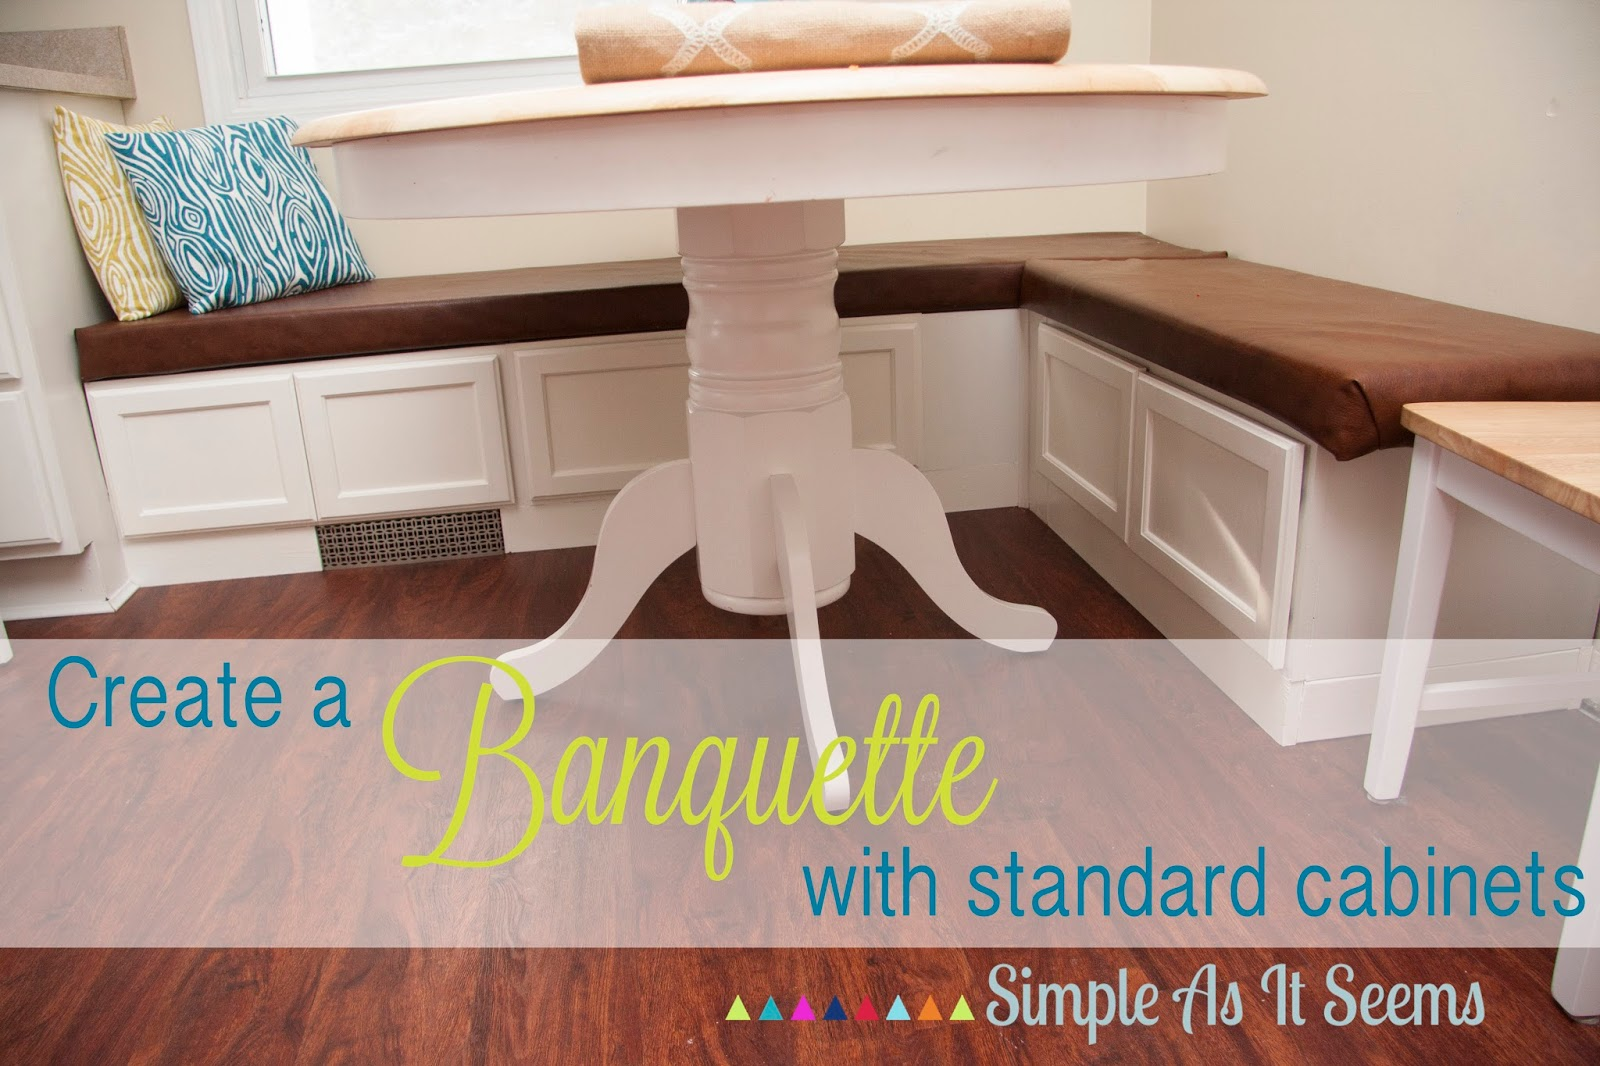 Simple as it seems diy kitchen banquette seating from cabinets - Kitchen bench diy ...